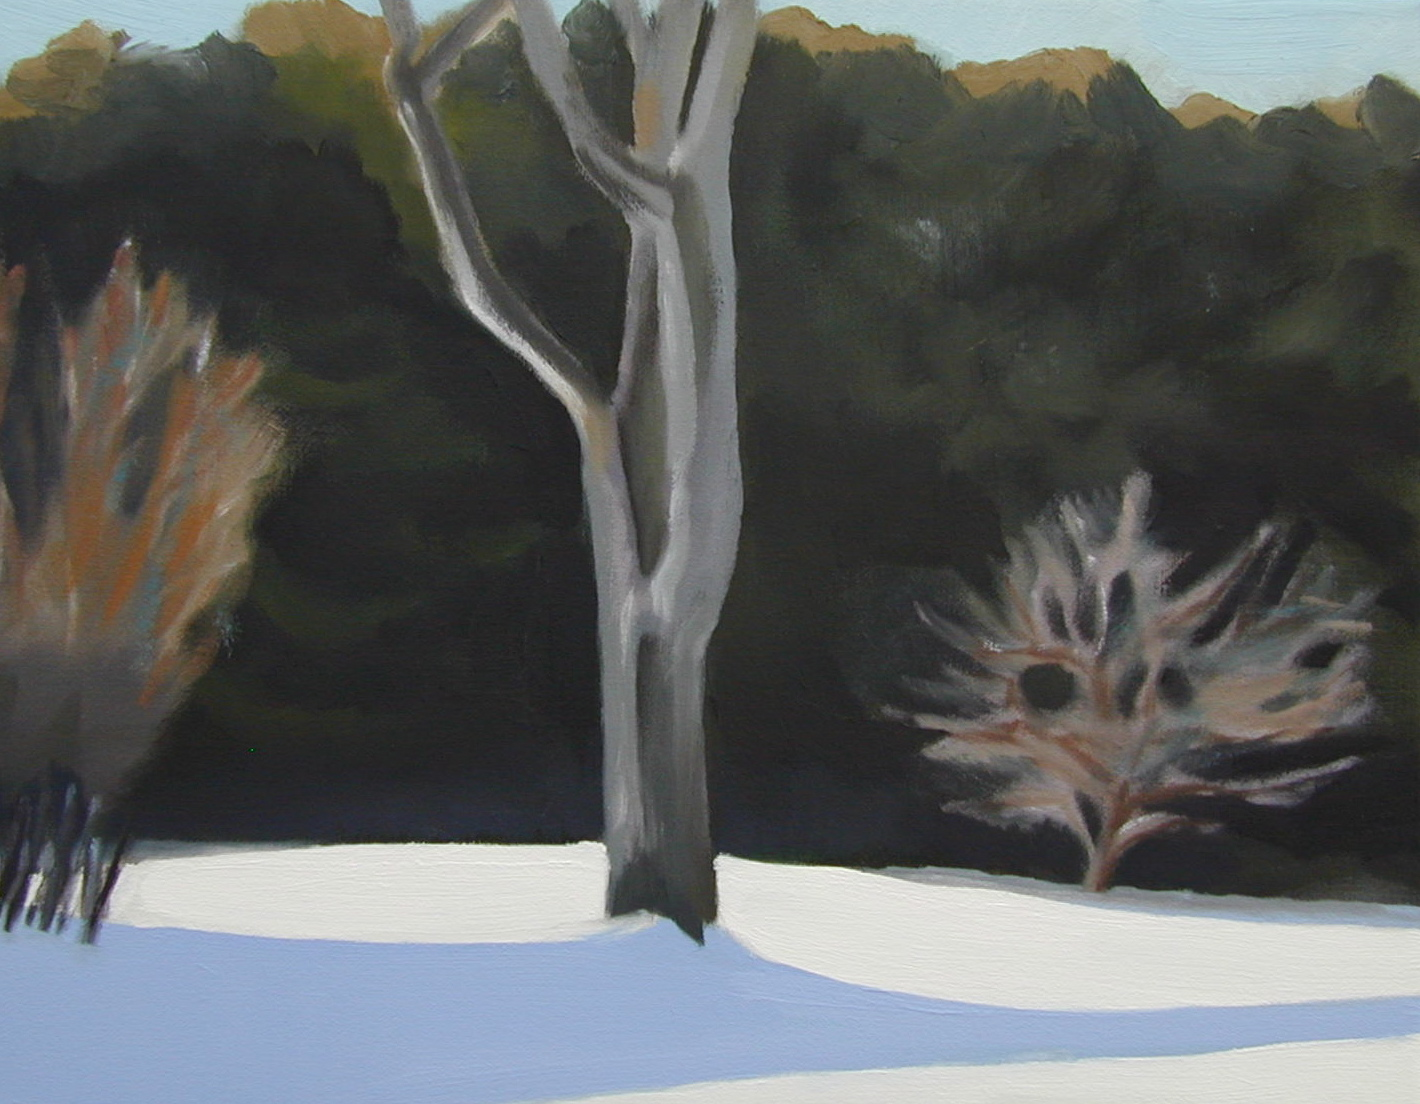 Tree in the Back. 11 x 14 inches, oil on canvas  (sold)